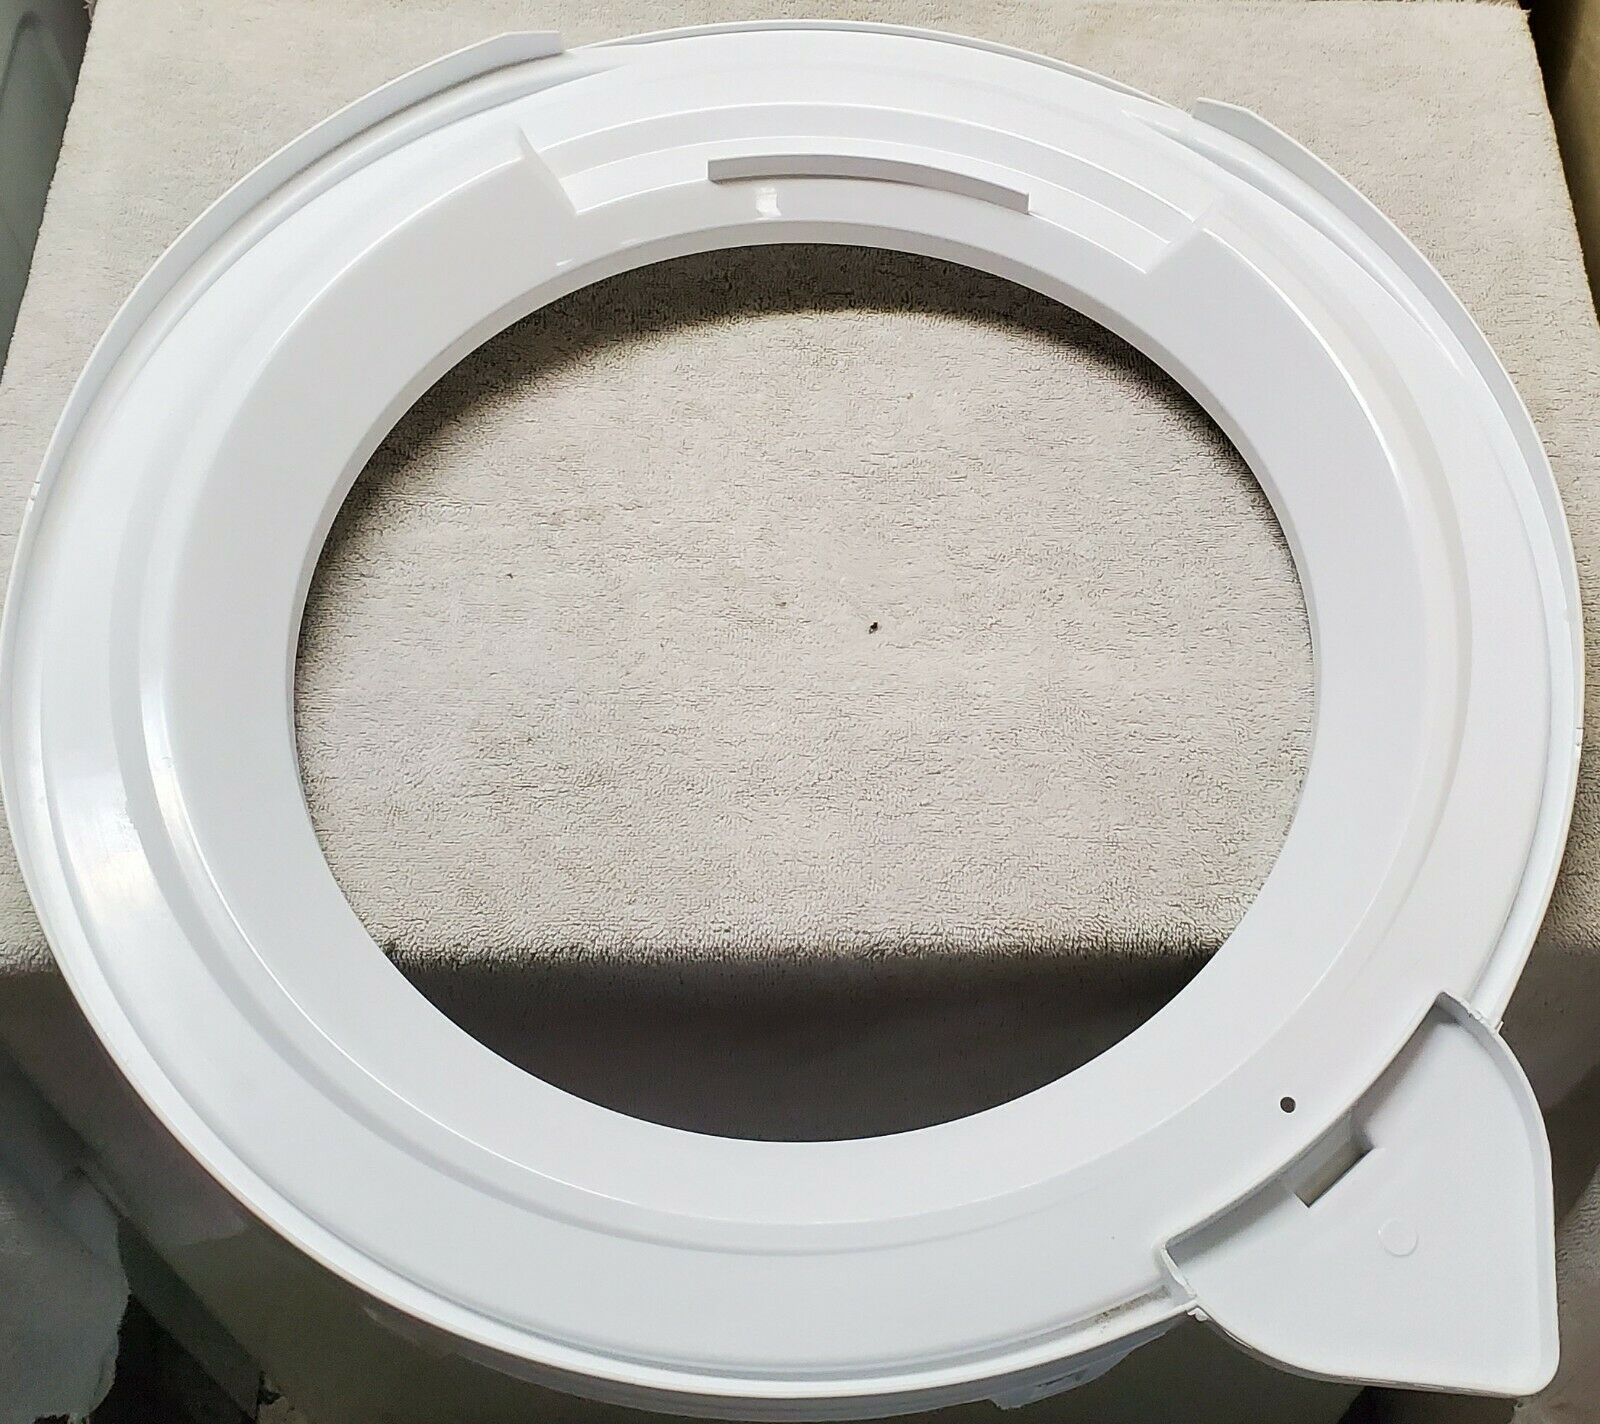 Whirlpool Washer Tub Ring Assembly W10880720; 8519789 ; W10445870 ; 8528150